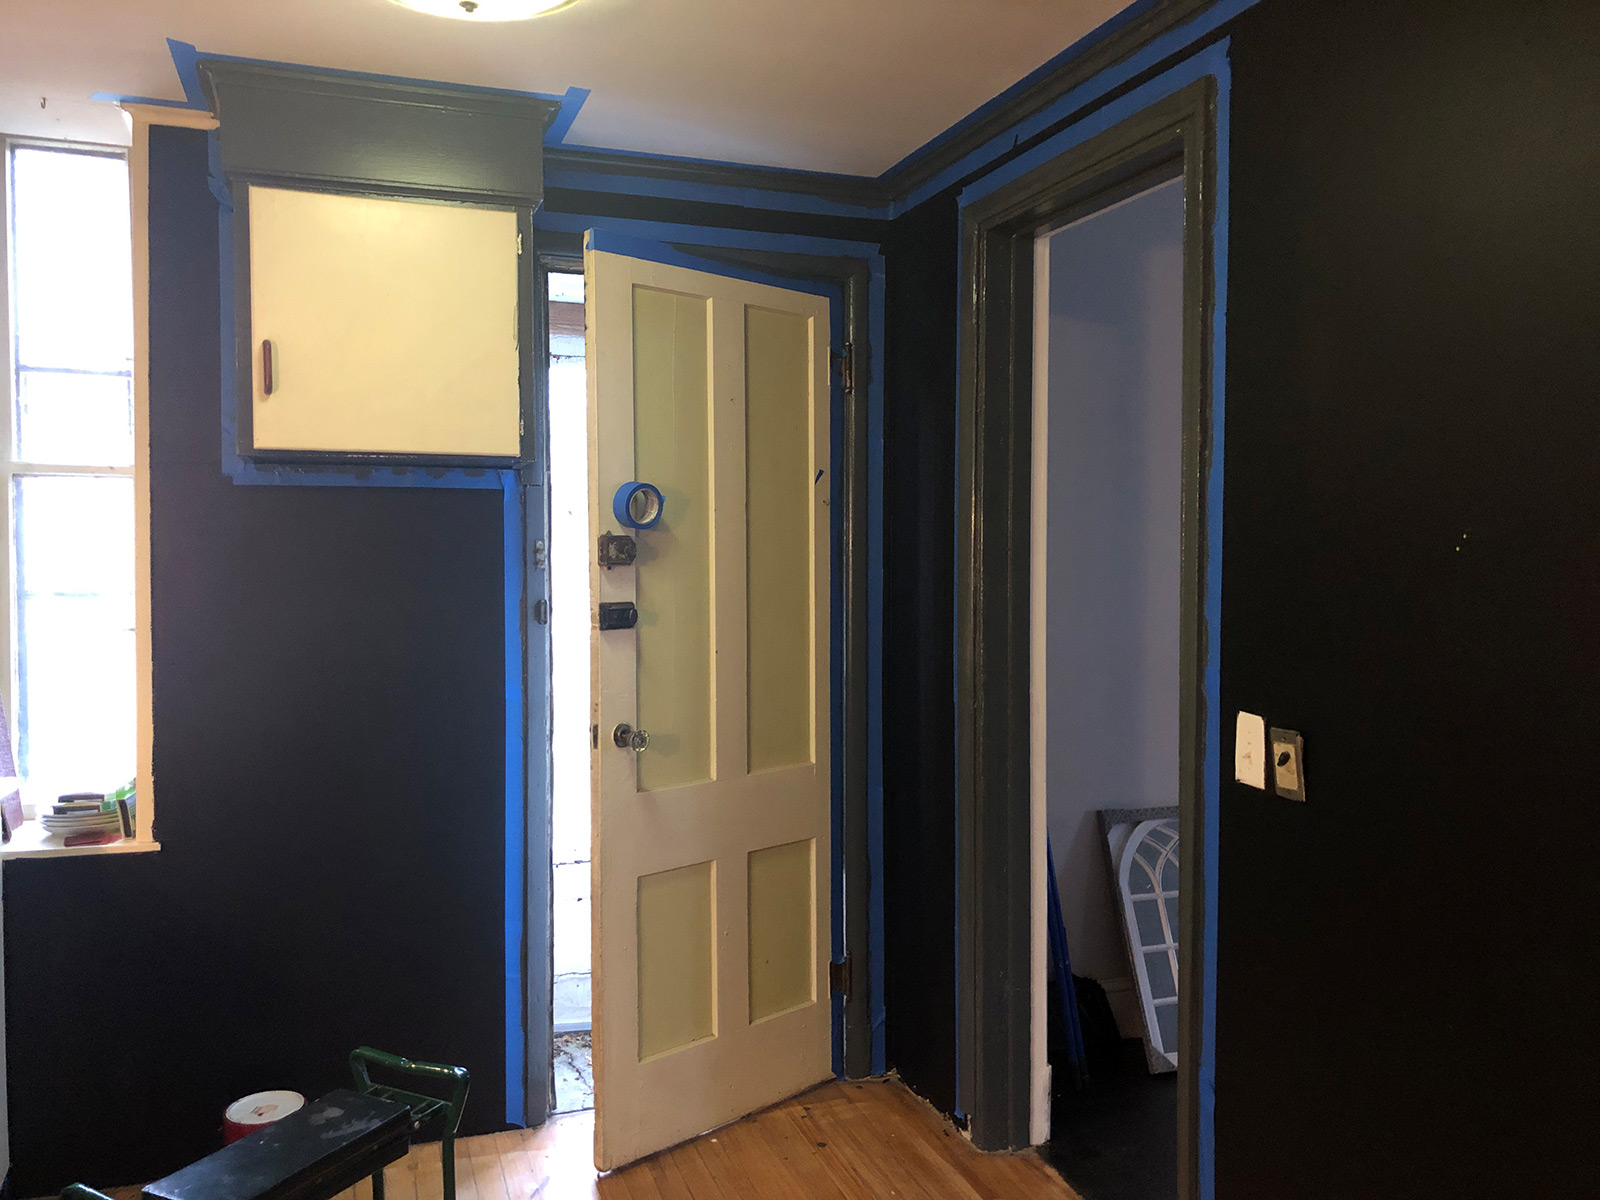 black-kitchen-door-masking.jpg